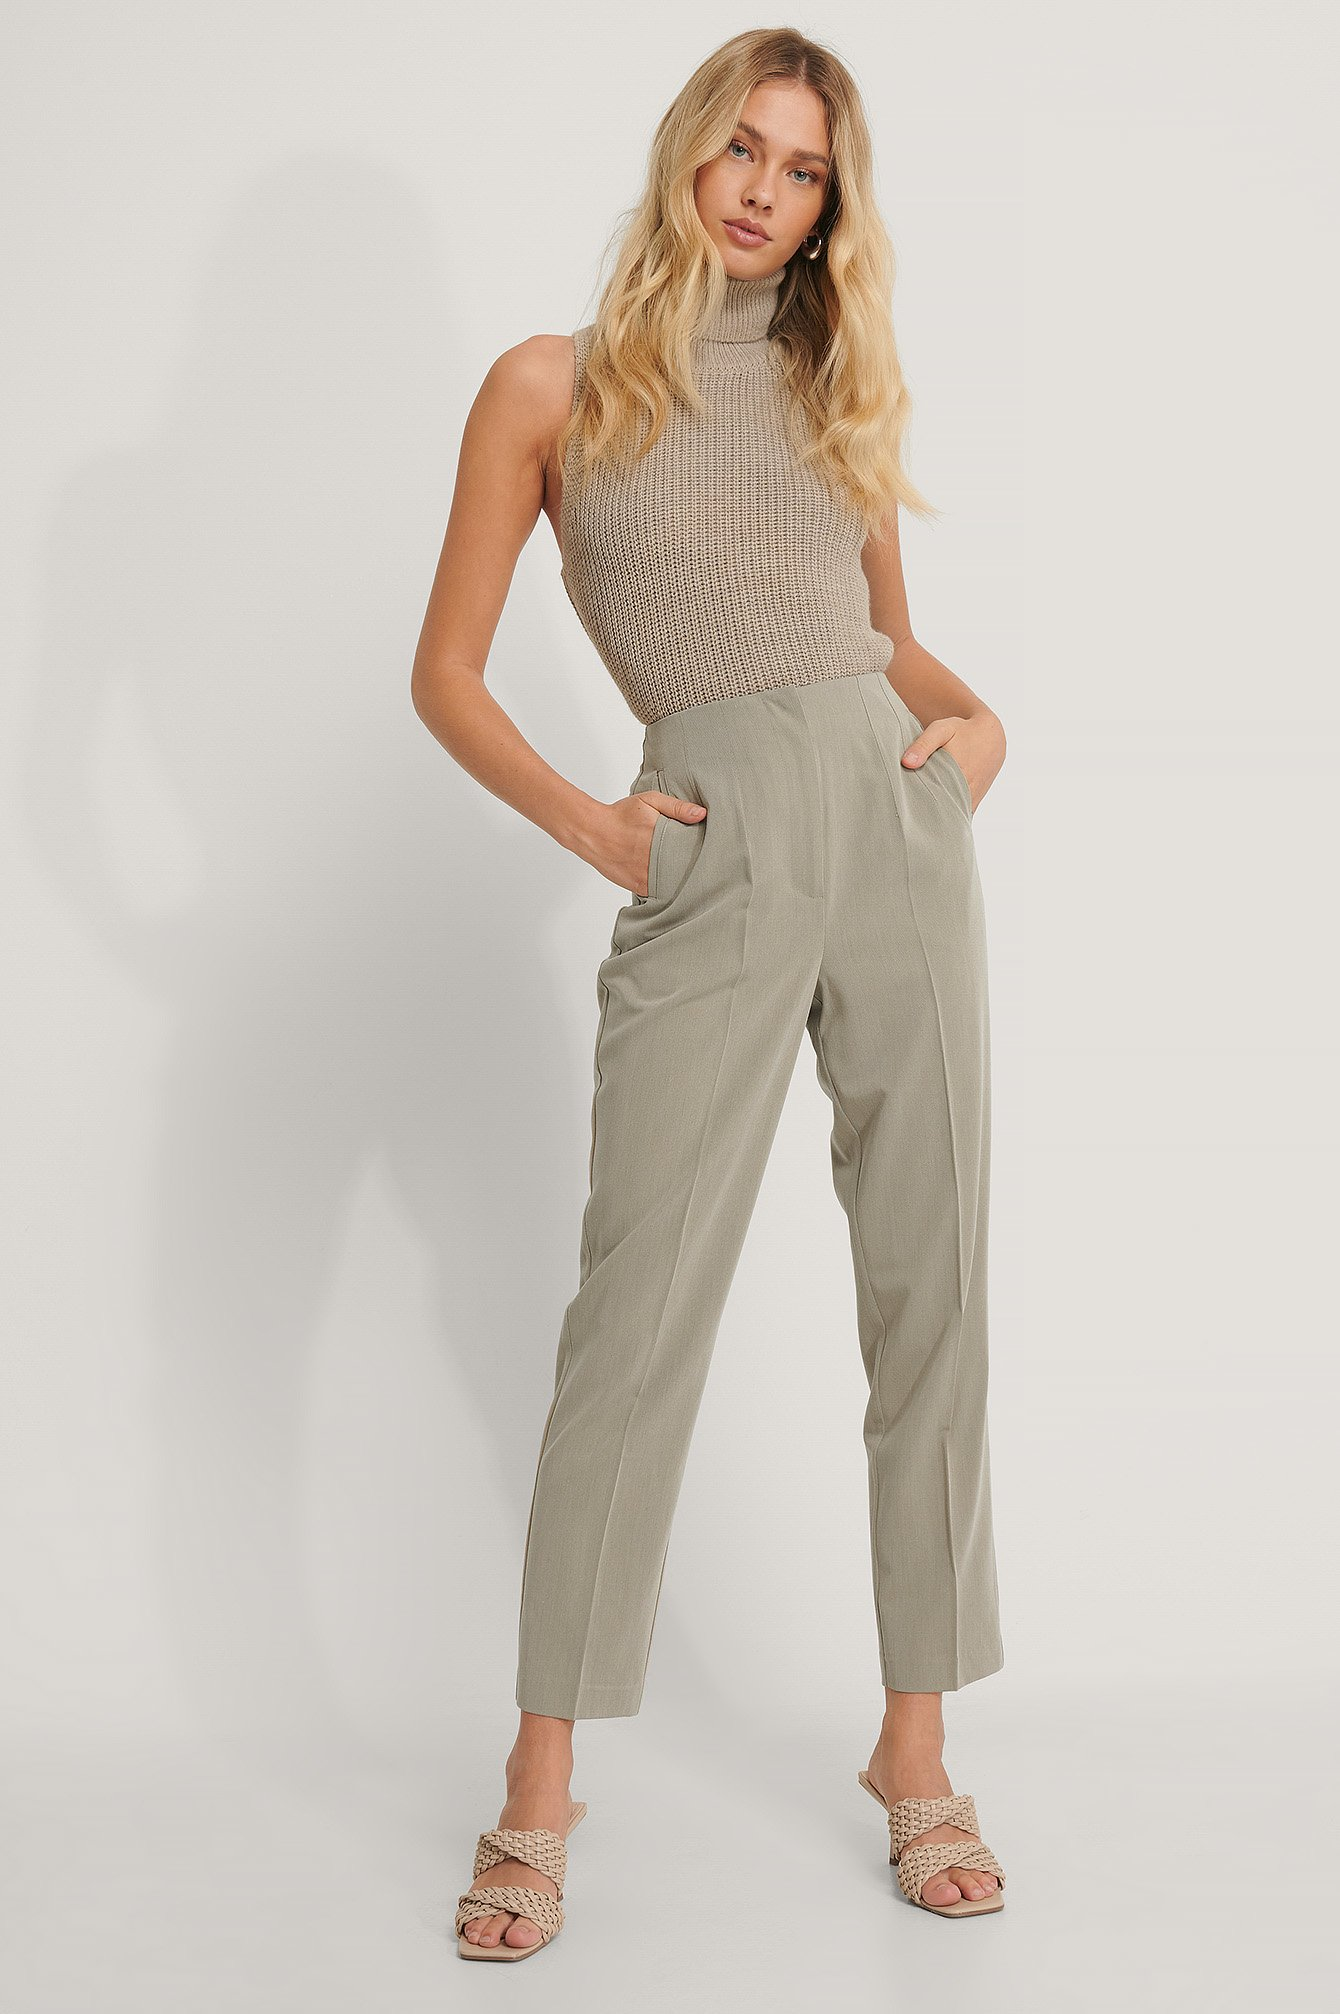 Dusty Light Green Darted Pants